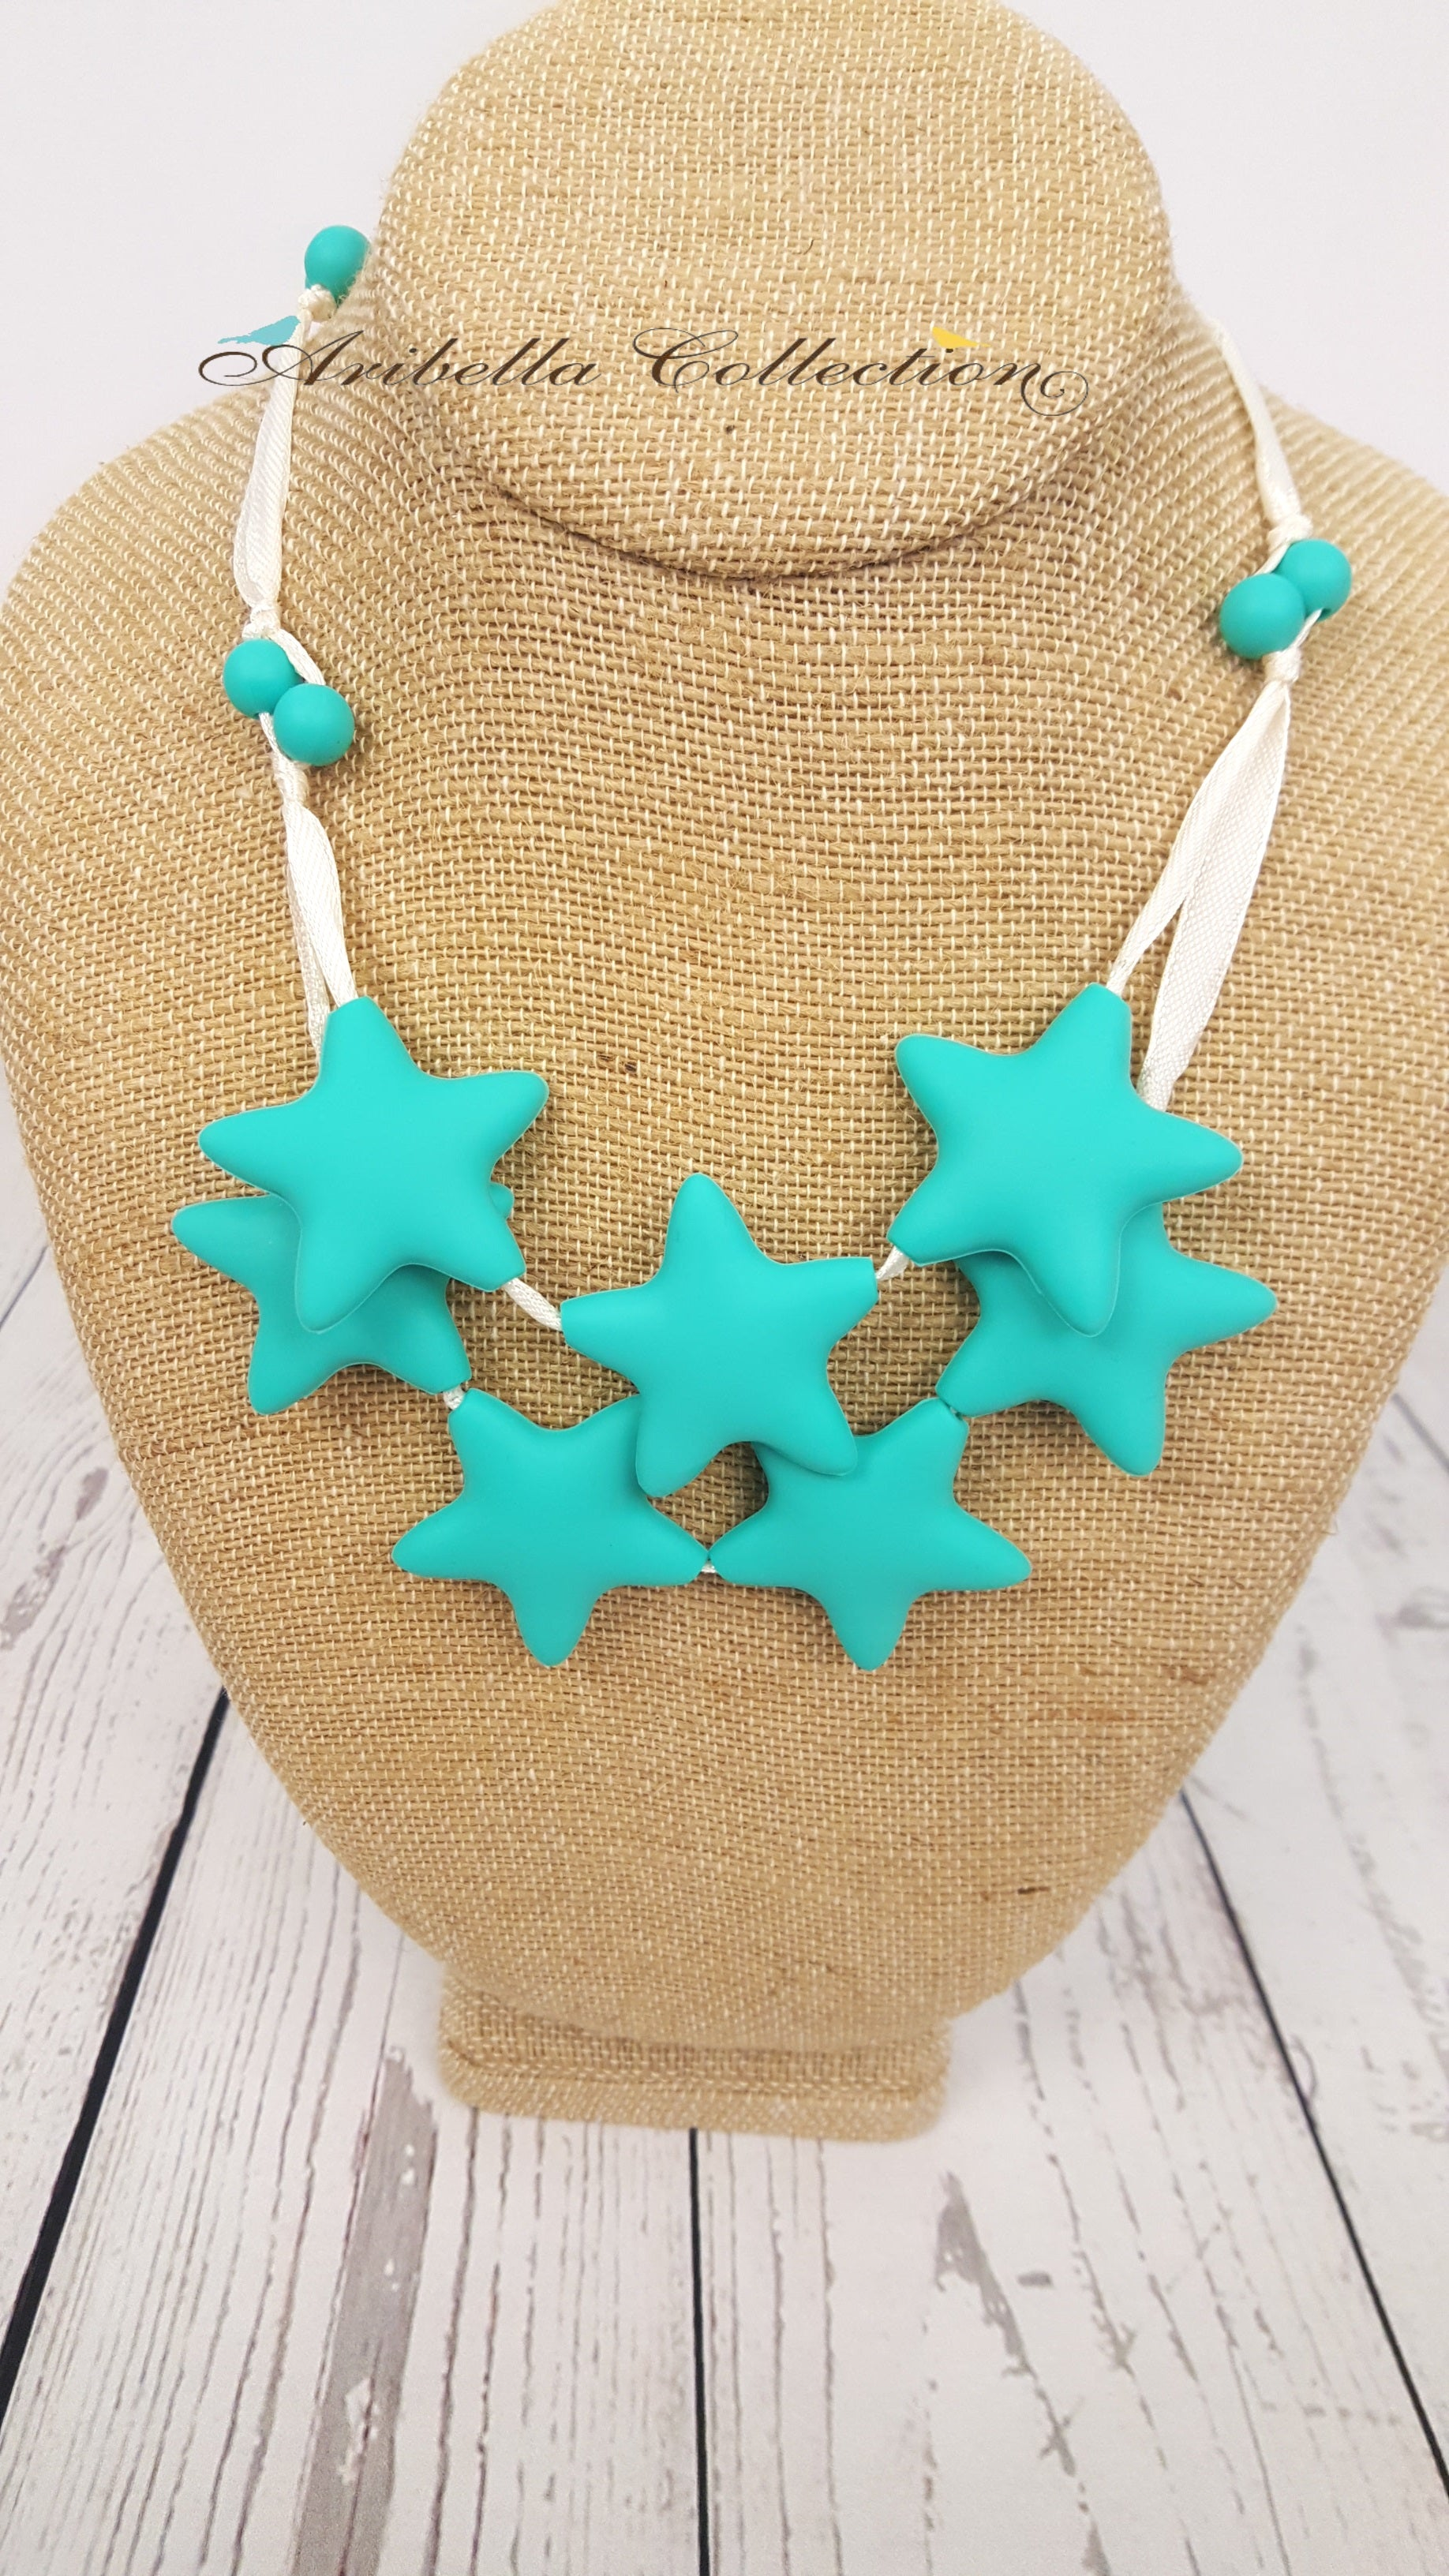 Silicone Necklace - Turquoise Star - Aribella Collection